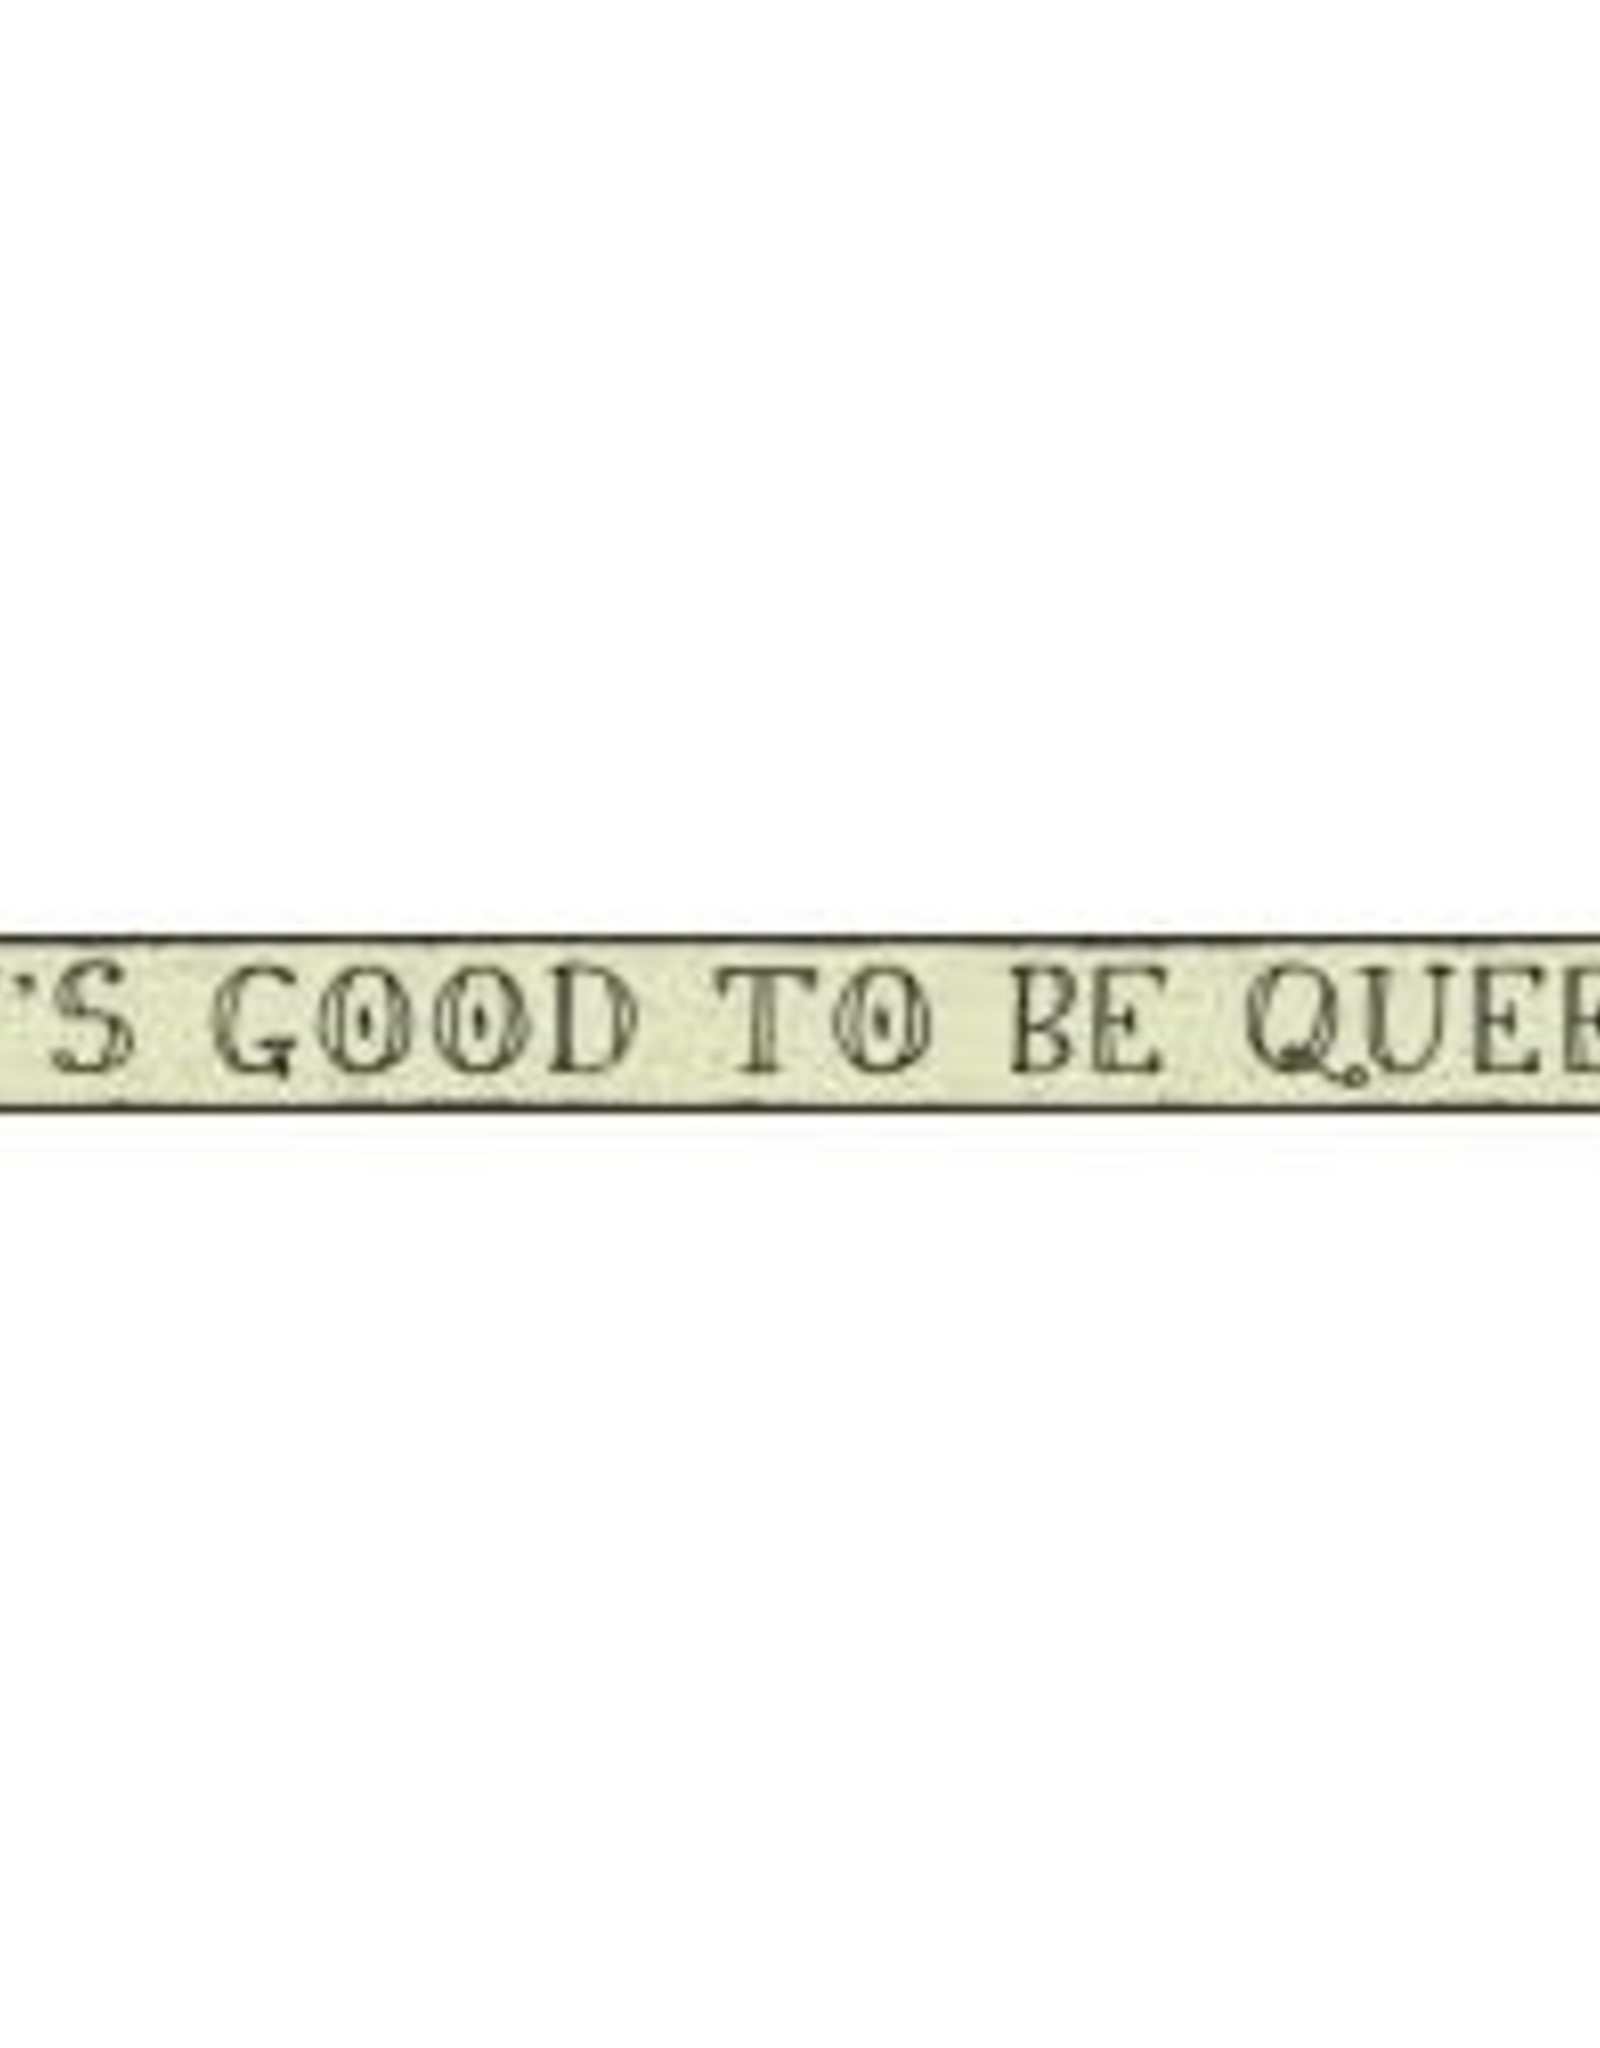 MY WORD IT'S GOOD TO BE QUEEN WOODEN SIGN